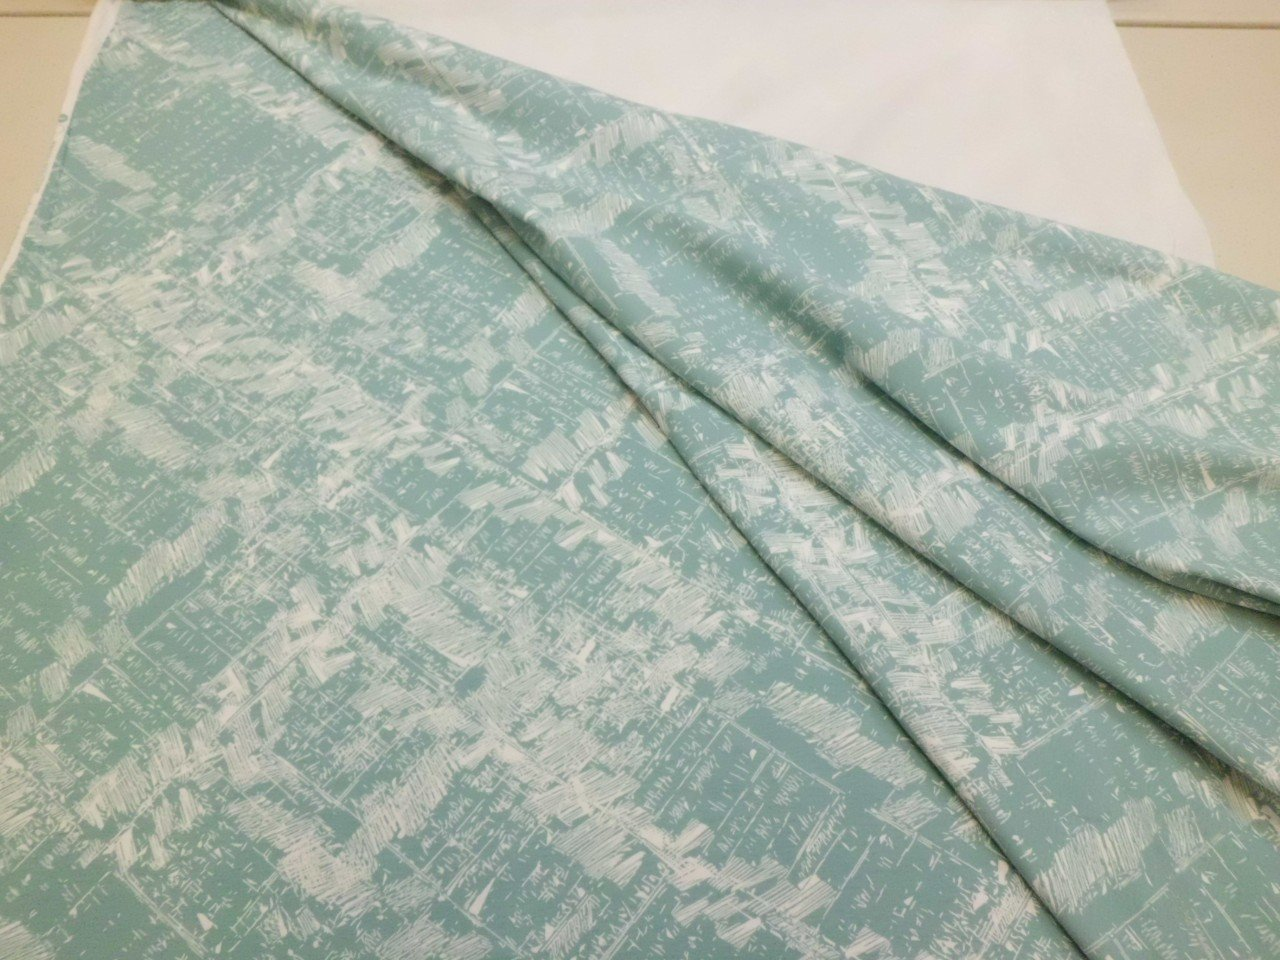 Art Gallery Cotton & Spandex Knit Print in Muted Teal